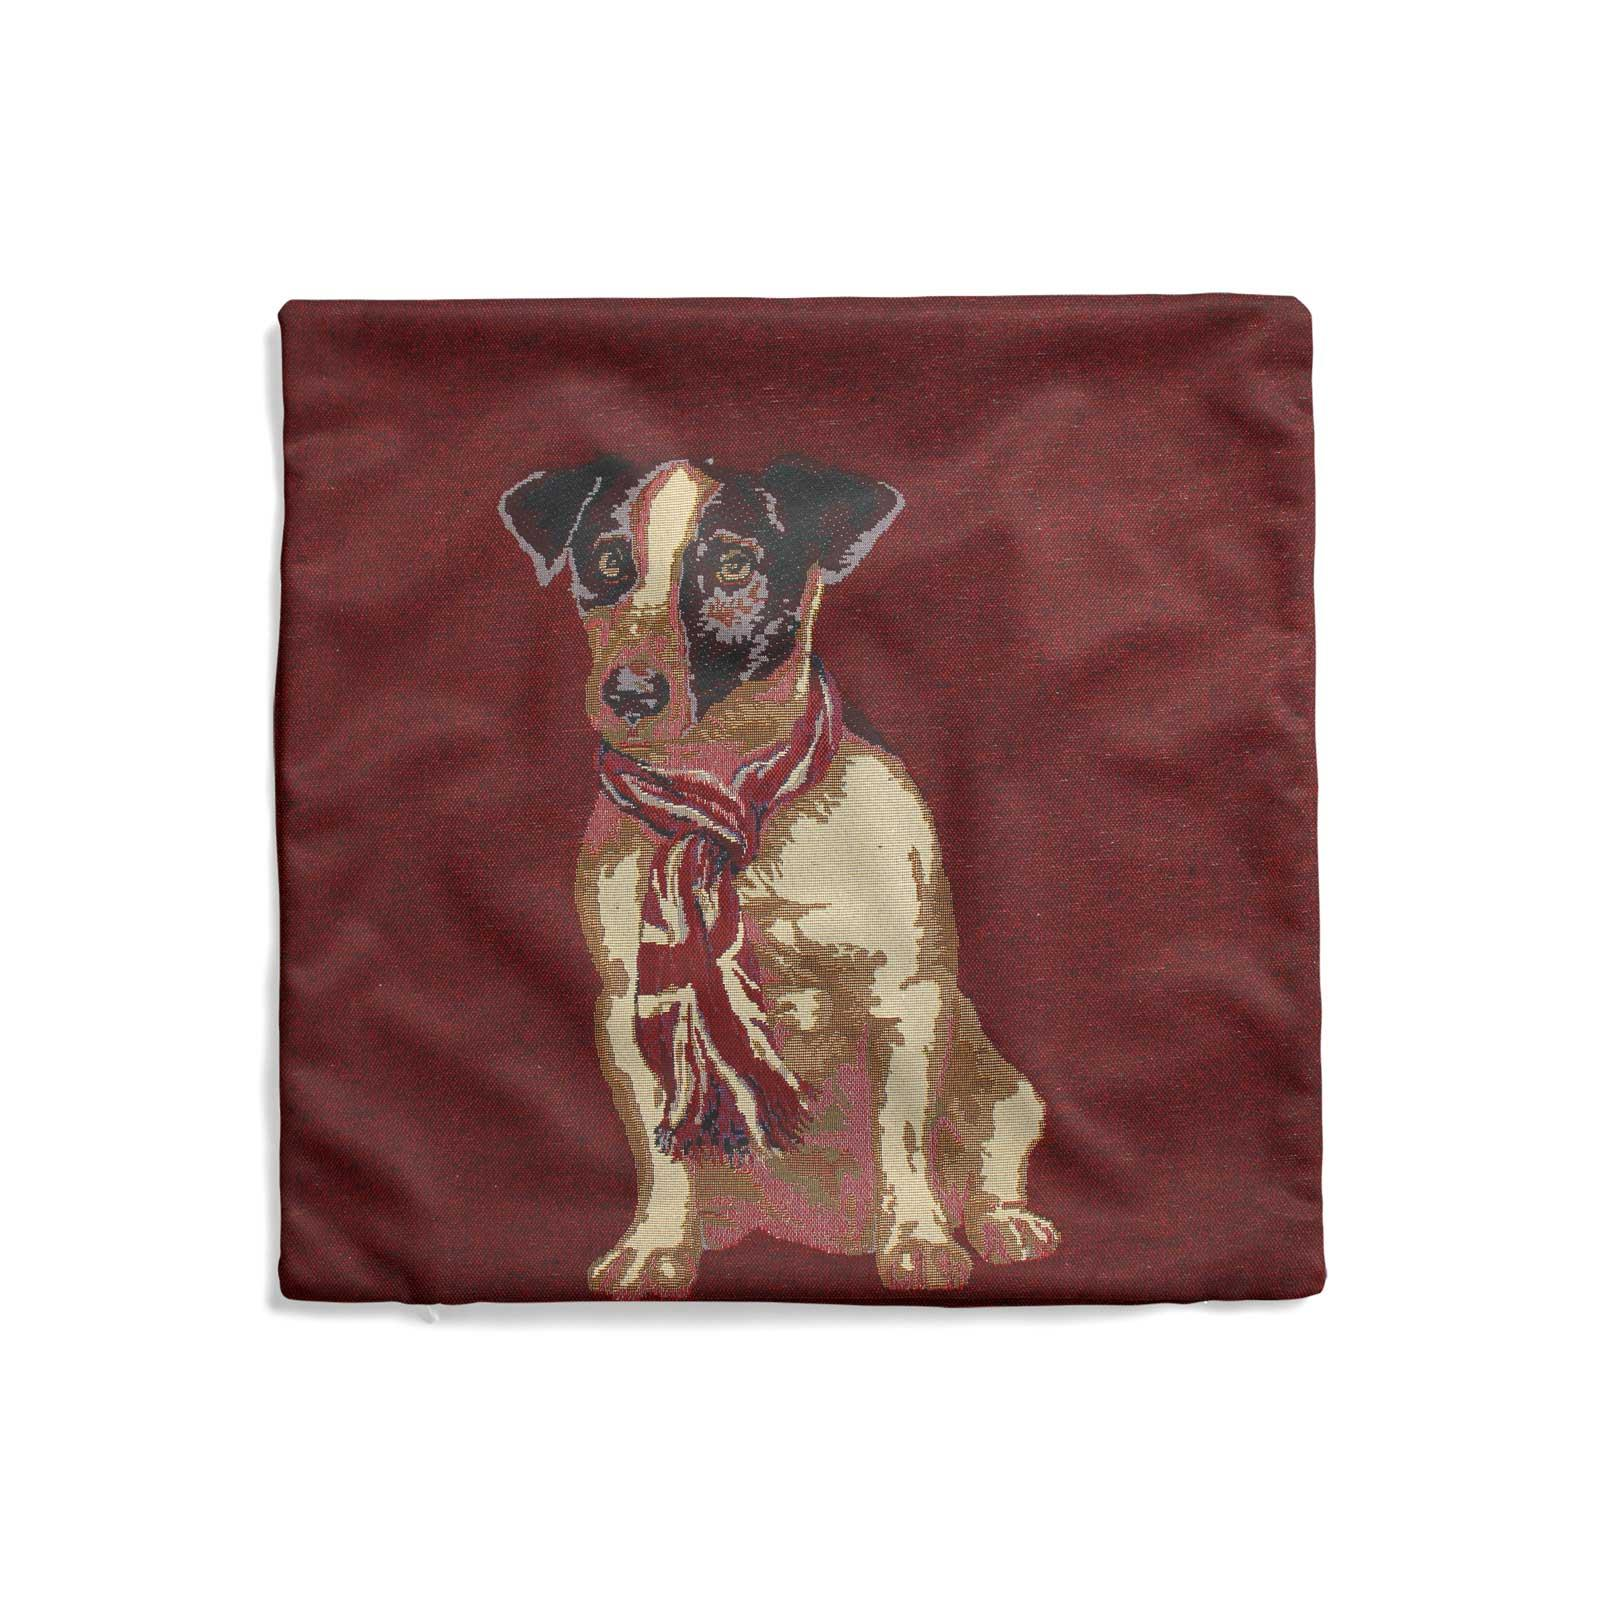 Tapestry-Cushion-Covers-Vintage-Pillow-Cover-Collection-18-034-45cm-Filled-Cushions thumbnail 88